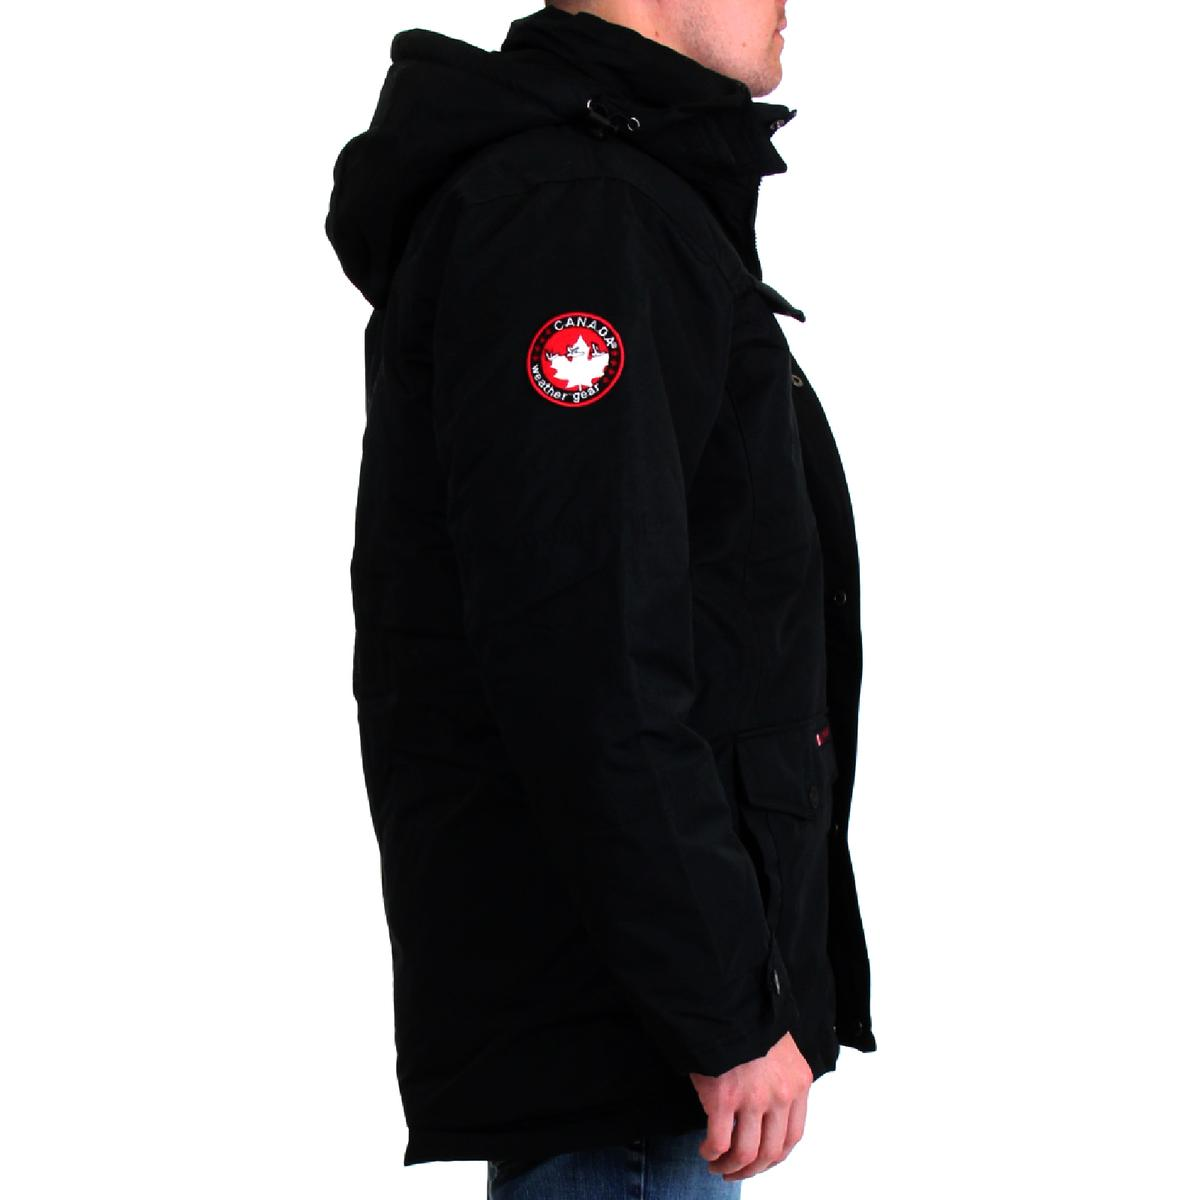 Canada-Weather-Gear-Systems-Men-039-s-Waterproof-Warm-Winter-Bib-Parka-Coat thumbnail 7